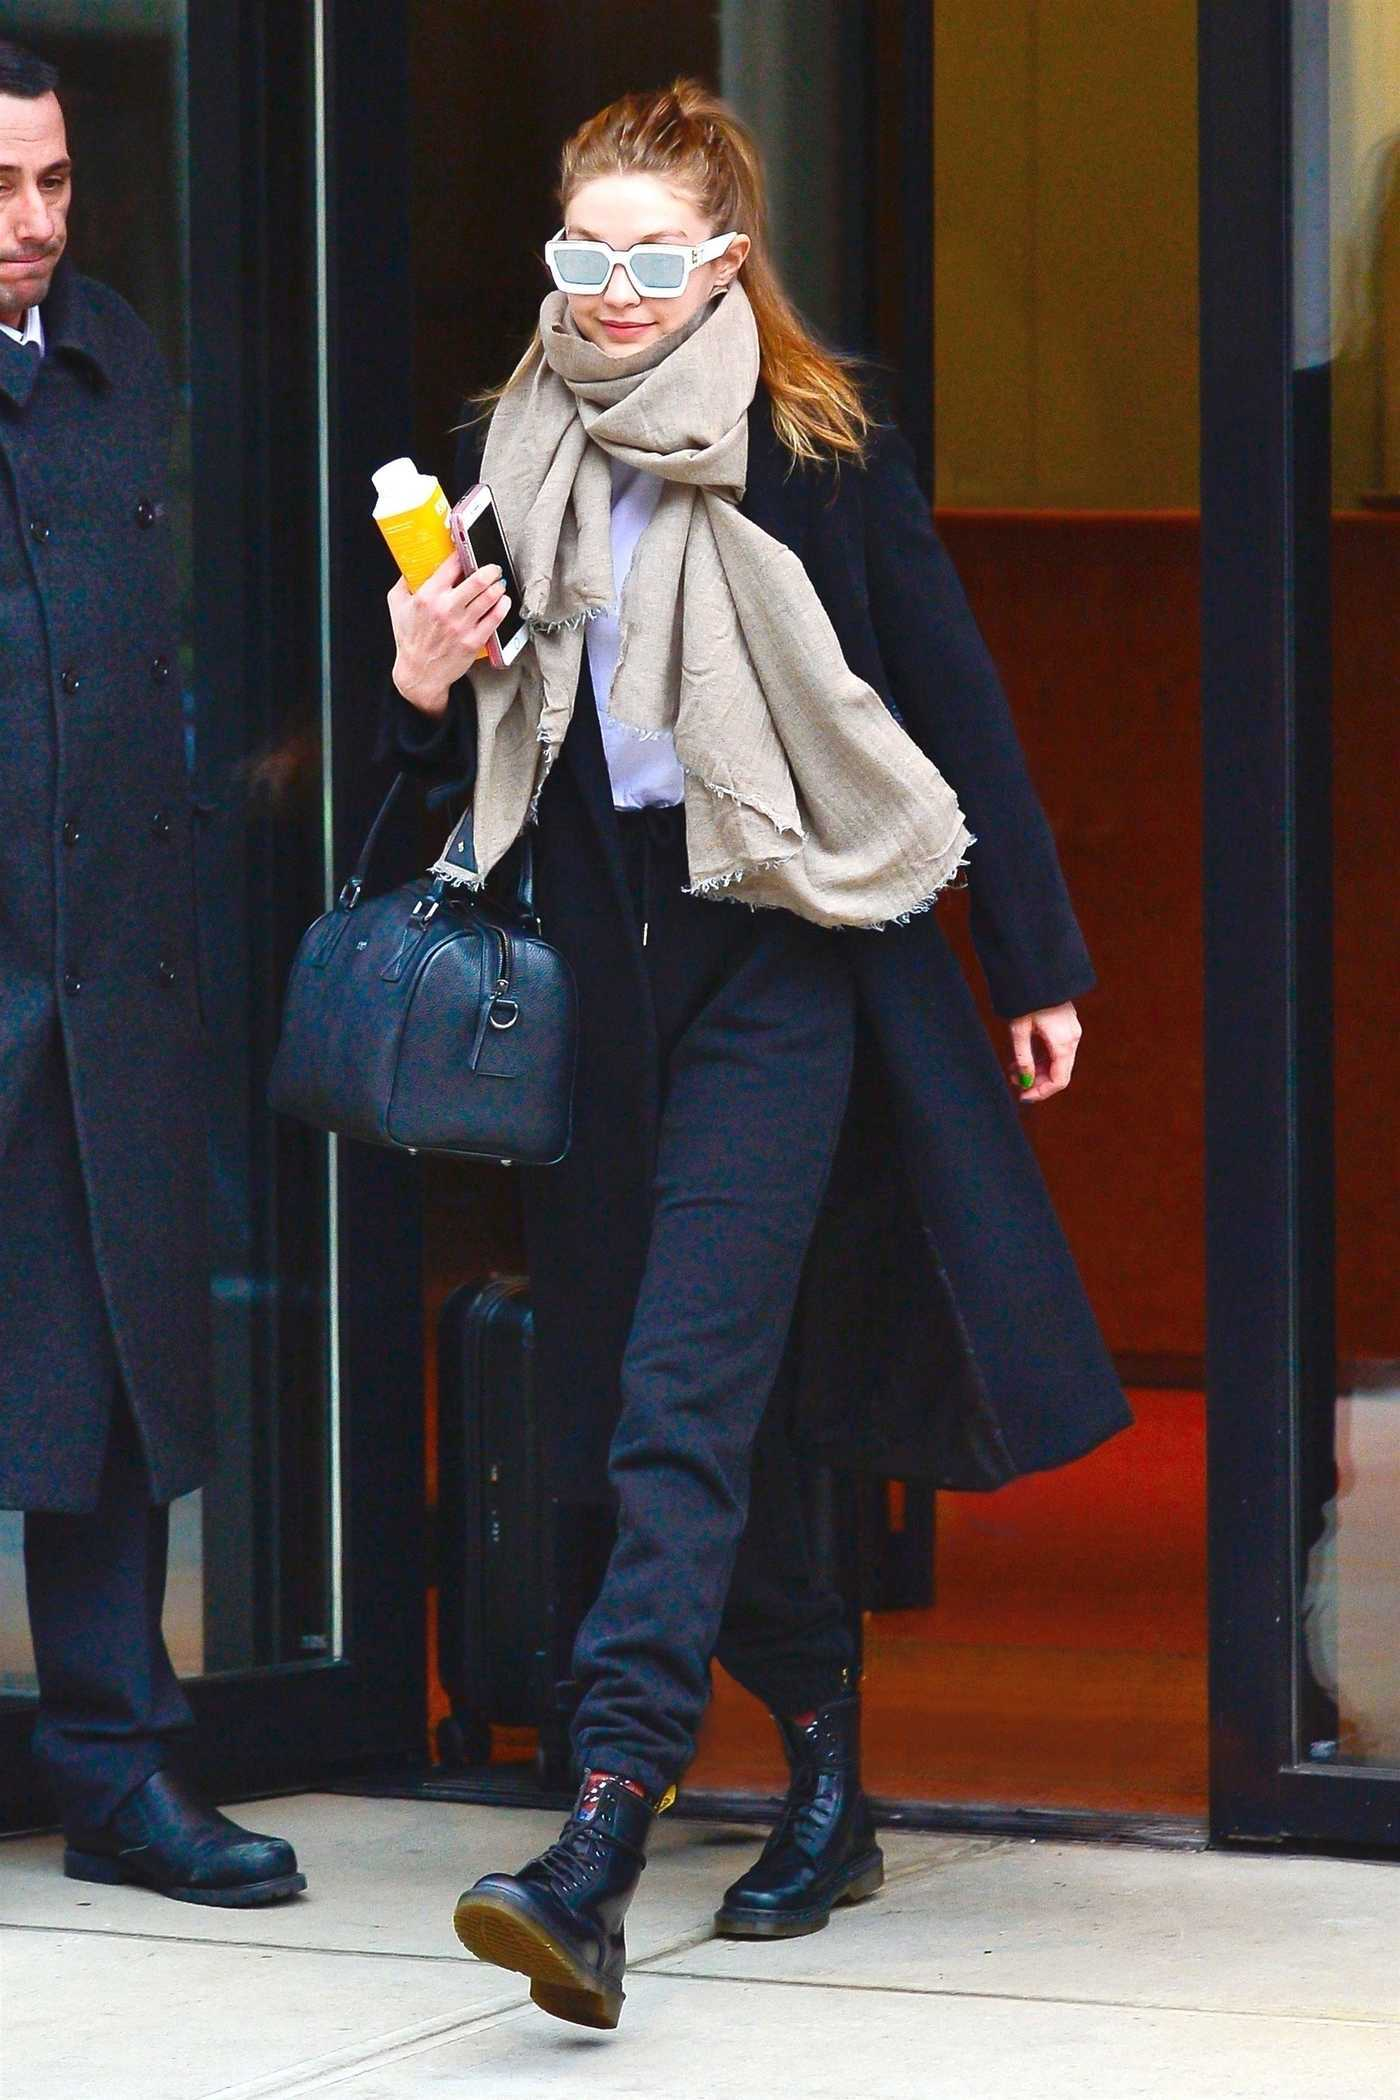 Gigi Hadid in a Black Coat Was Seen Out in NYC 01/23/2019